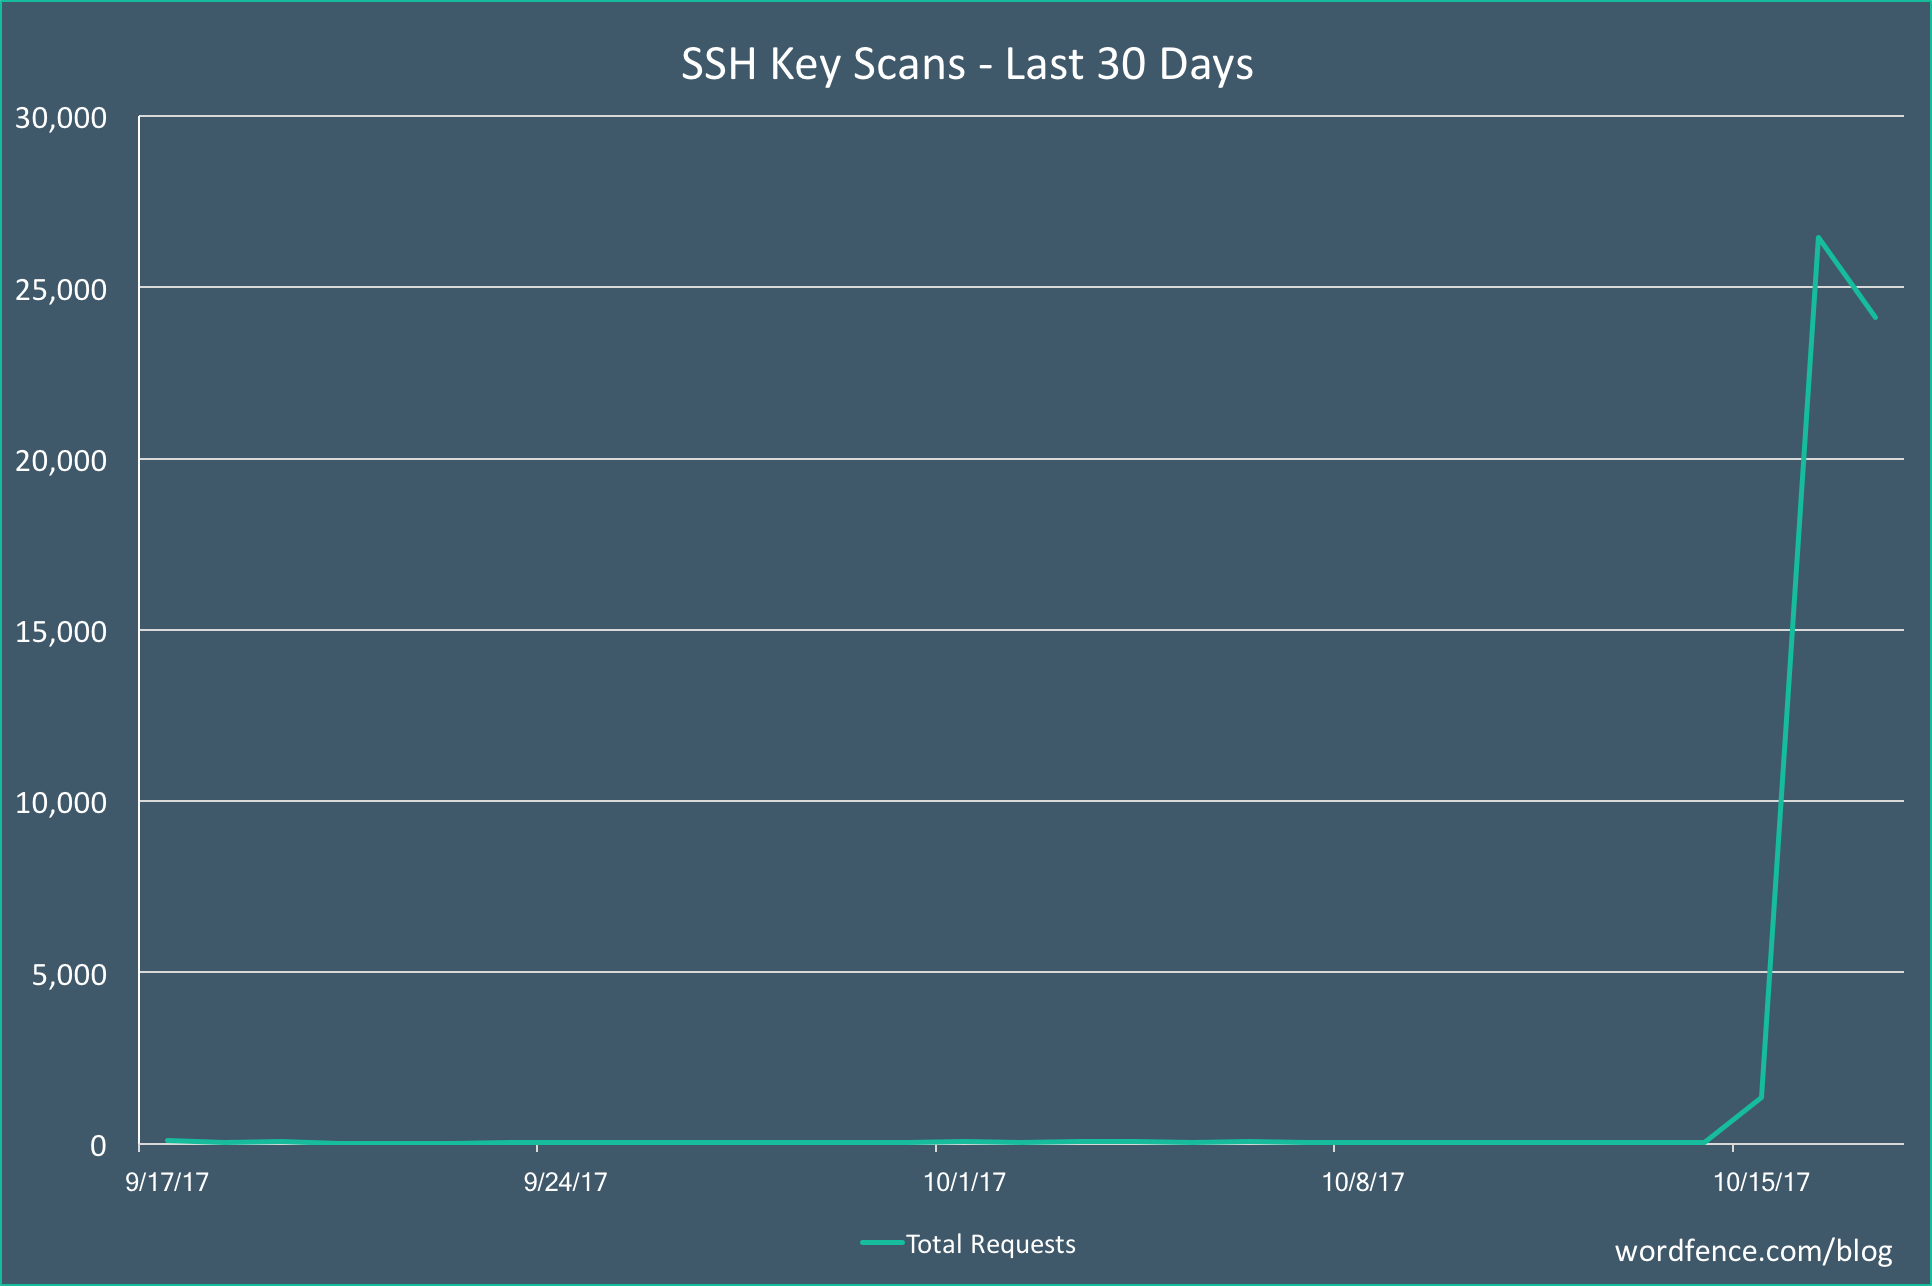 SSH keys scans